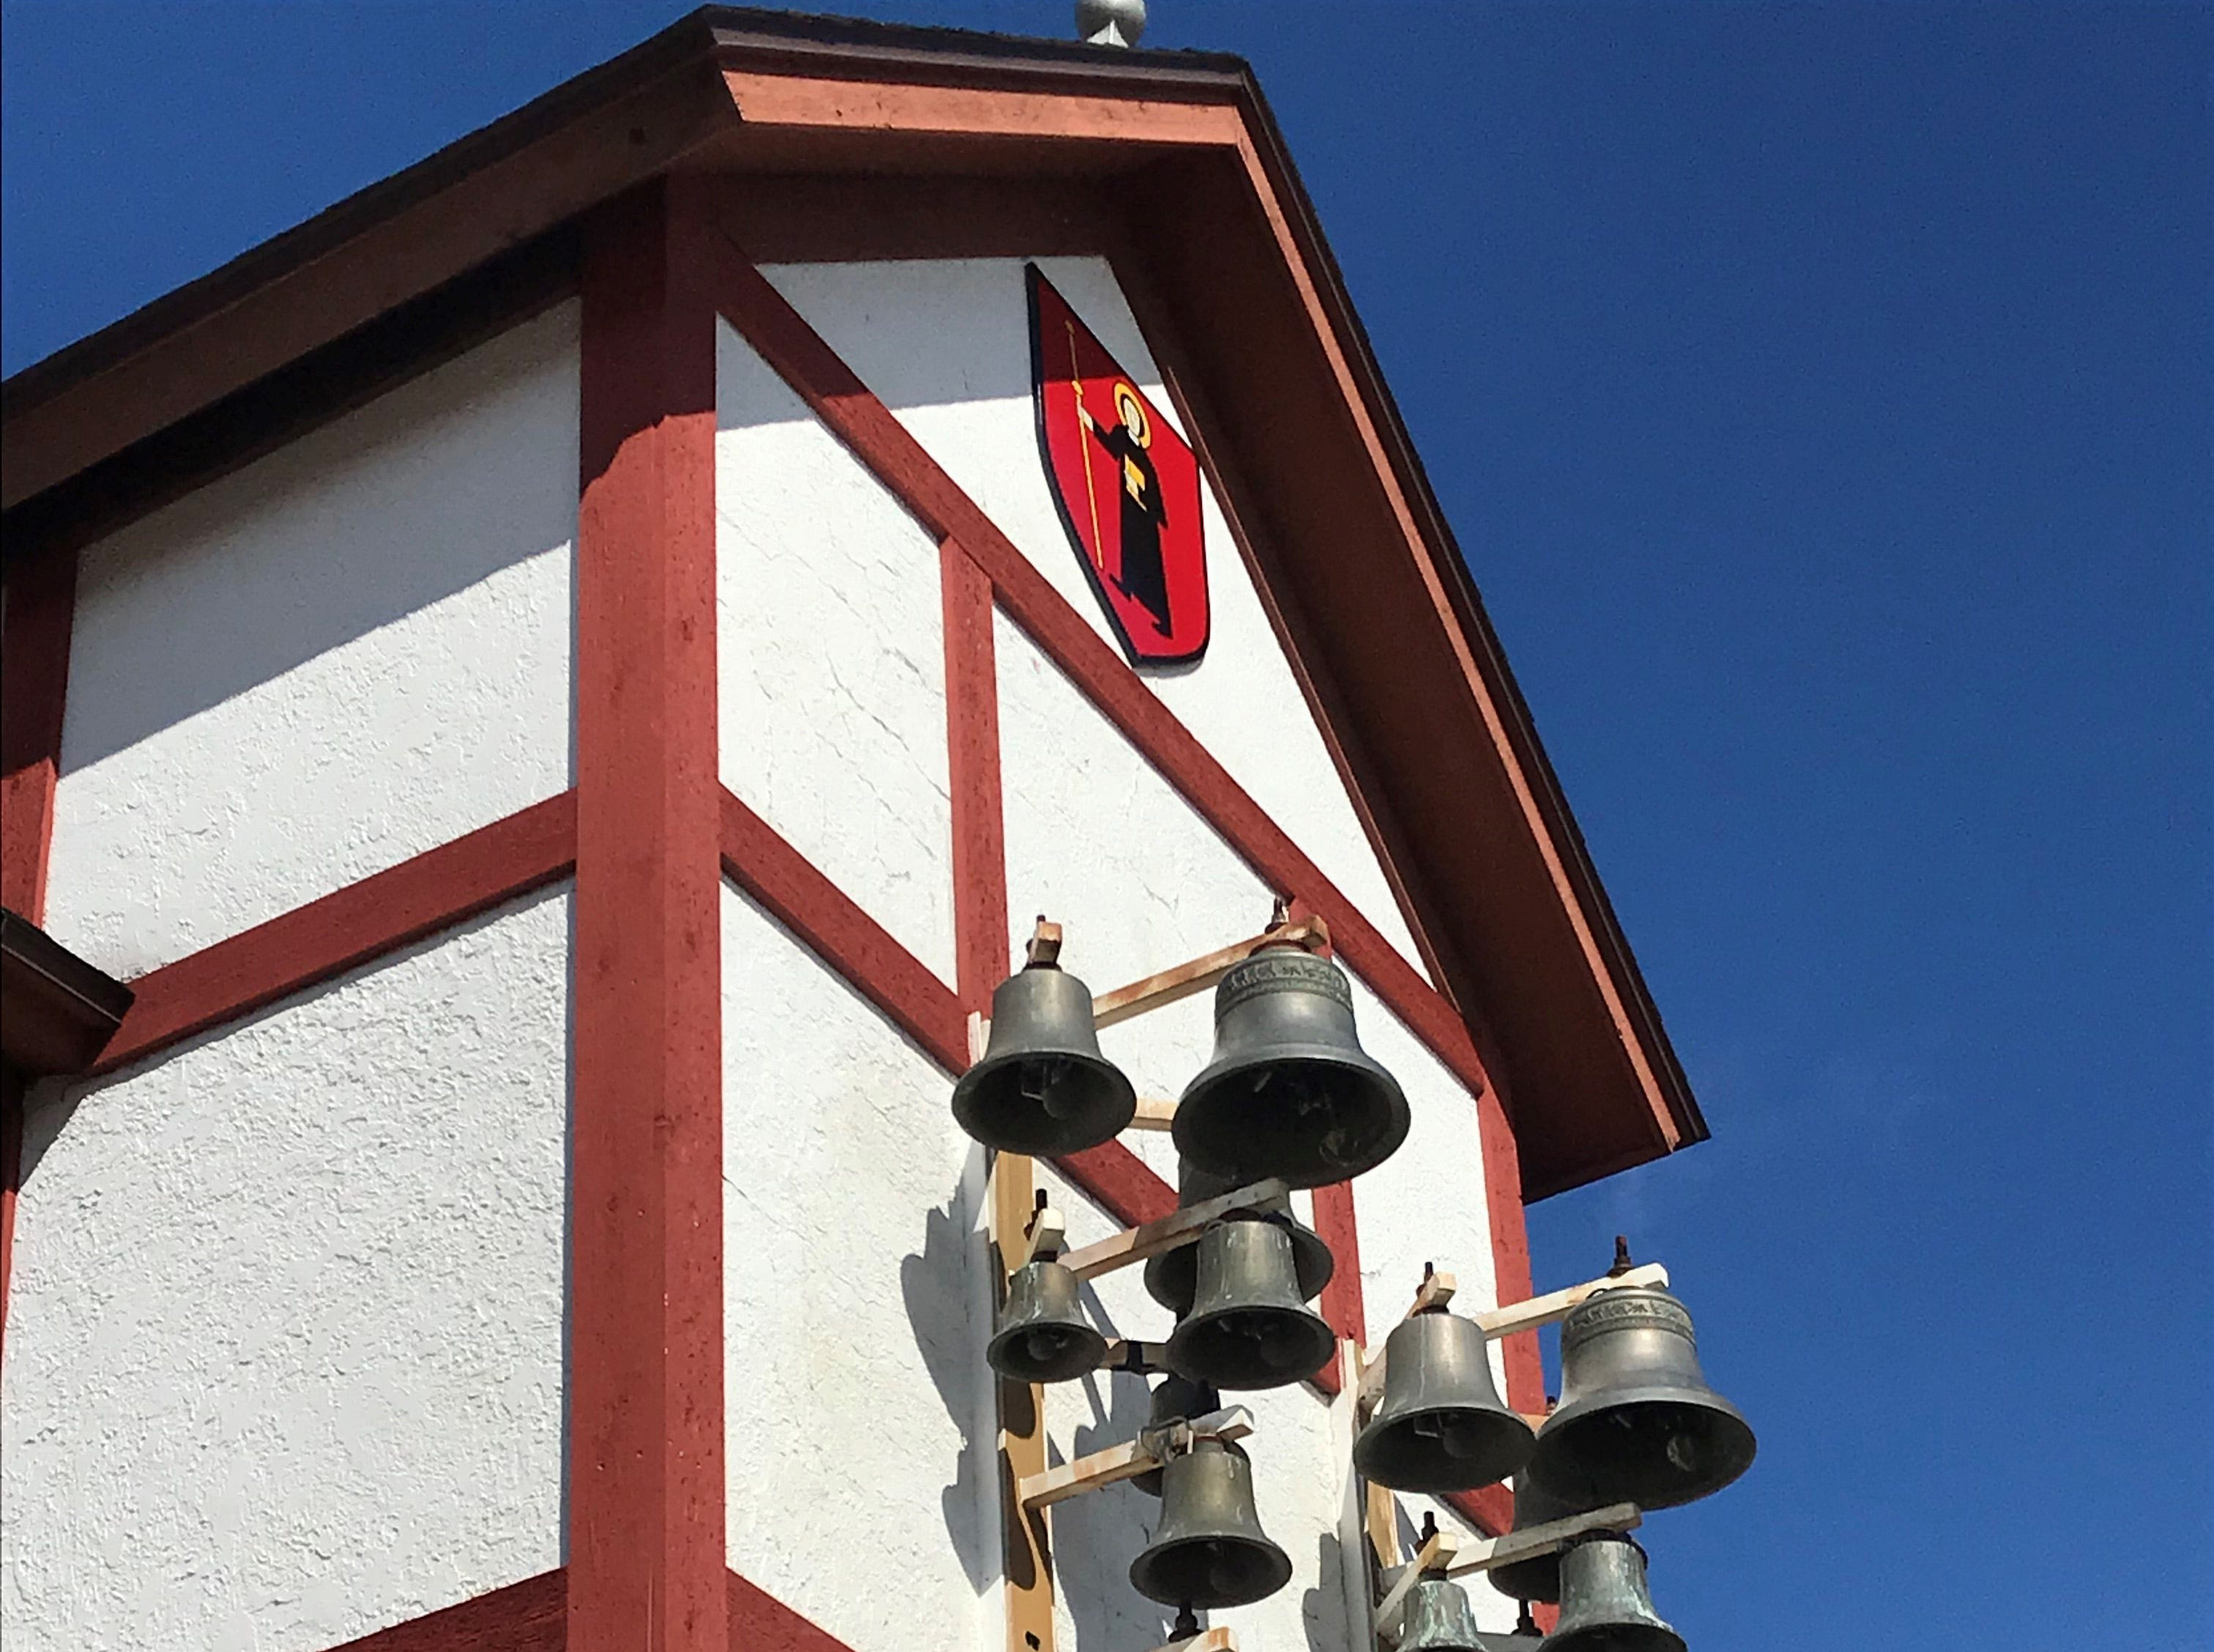 A set of bells hangs under the Swiss coat of arms in downtown New Glarus.